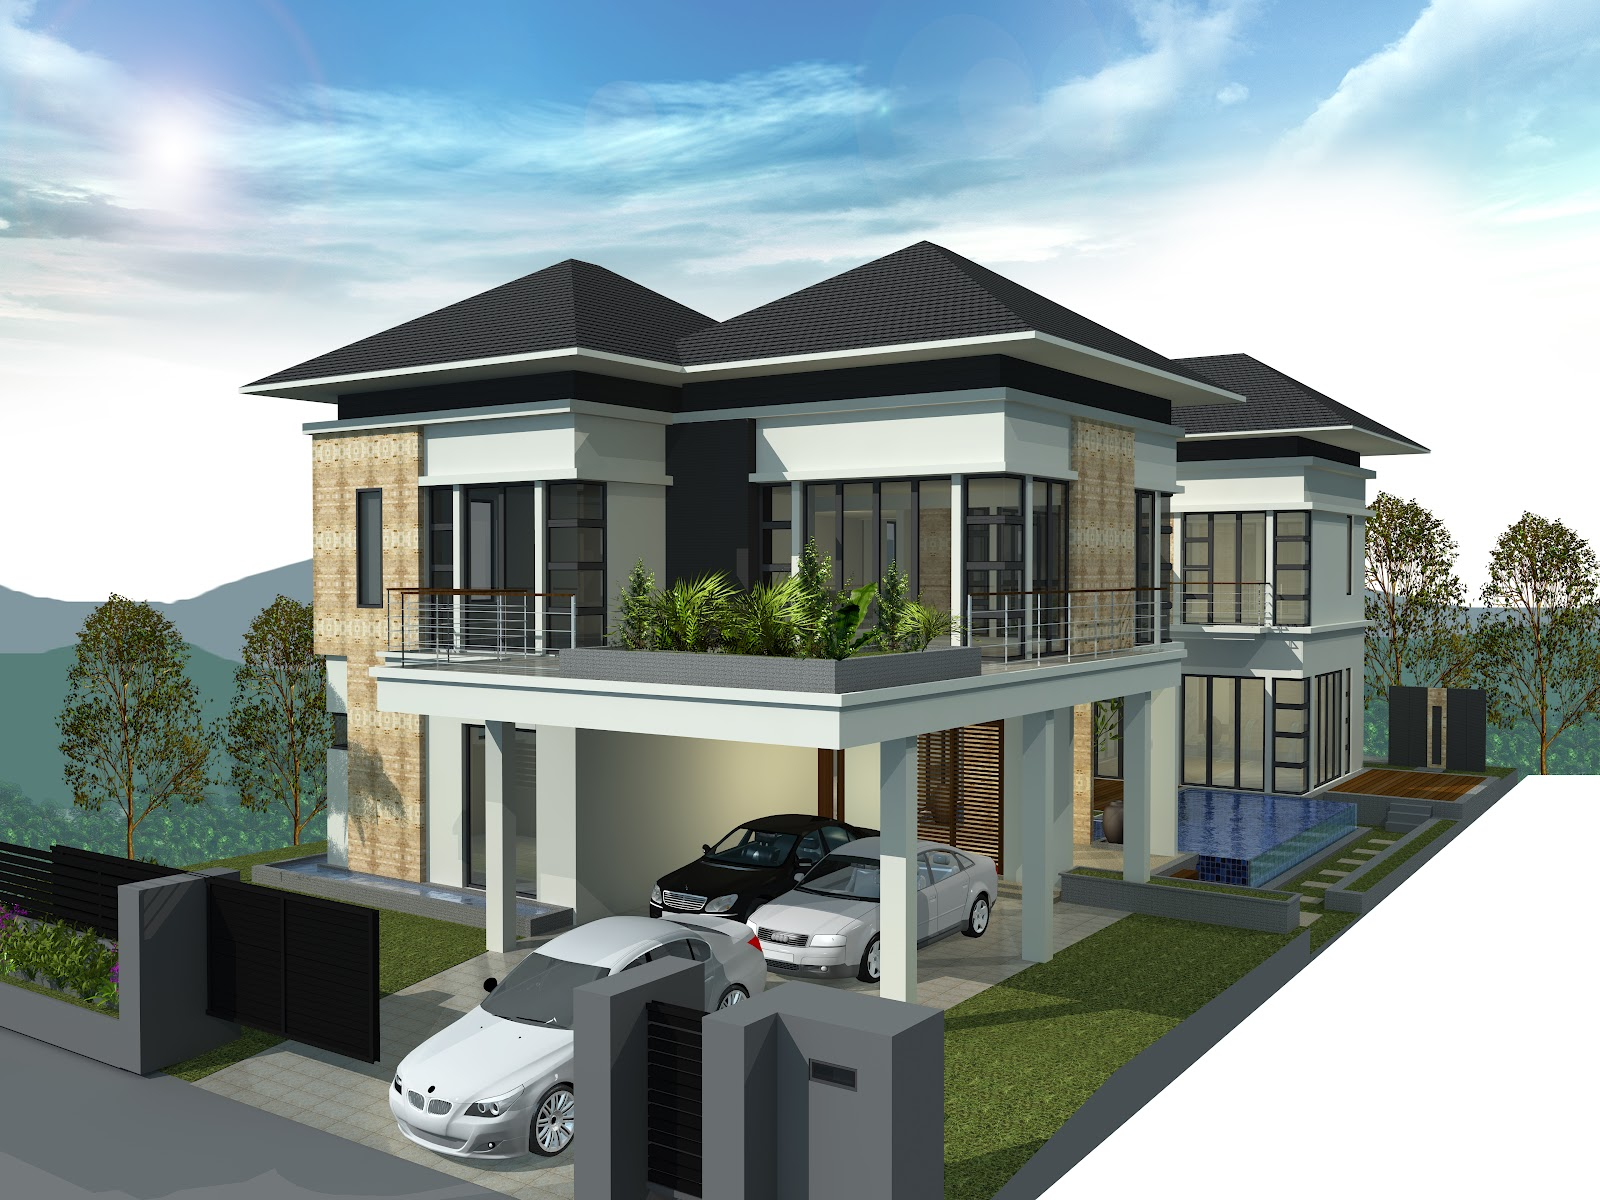 Bungalow houses pictures in malaysia joy studio design gallery best design Home architecture malaysia